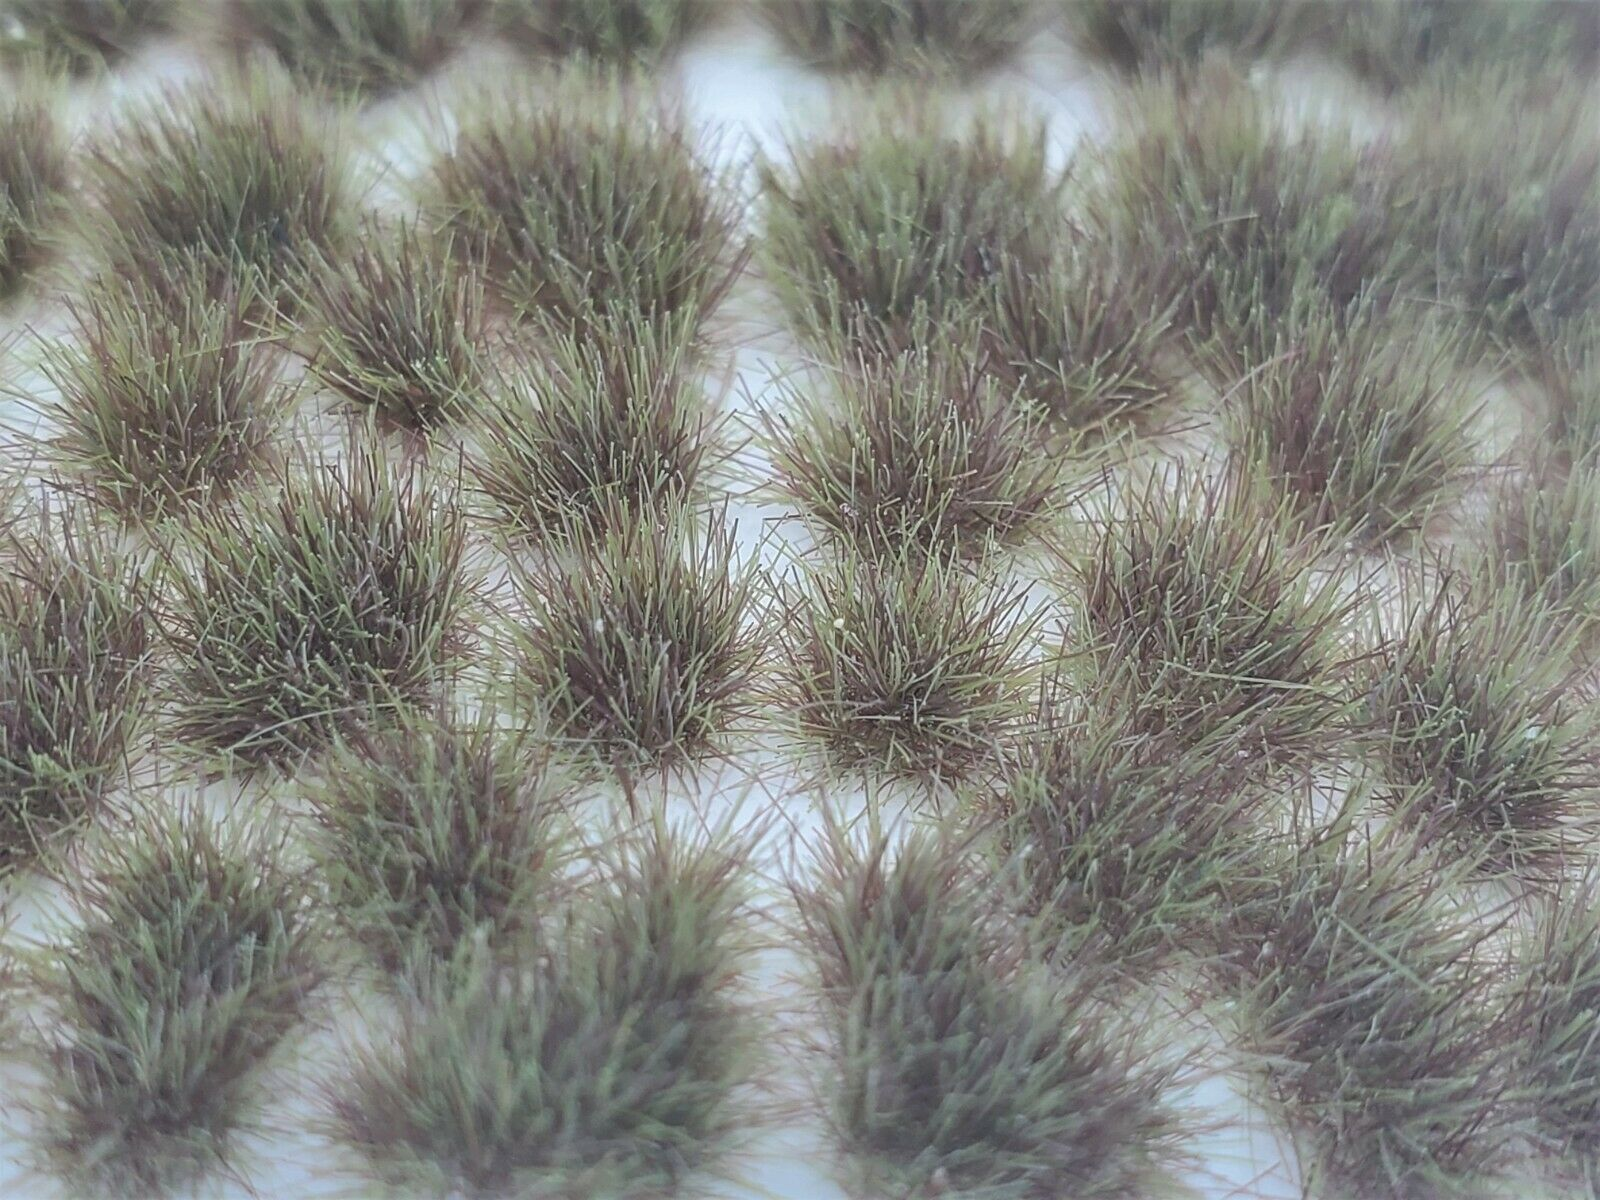 Self Adhesive Static Grass Tufts- Miniature Scenery/Terrain-Dry Steppe Grass